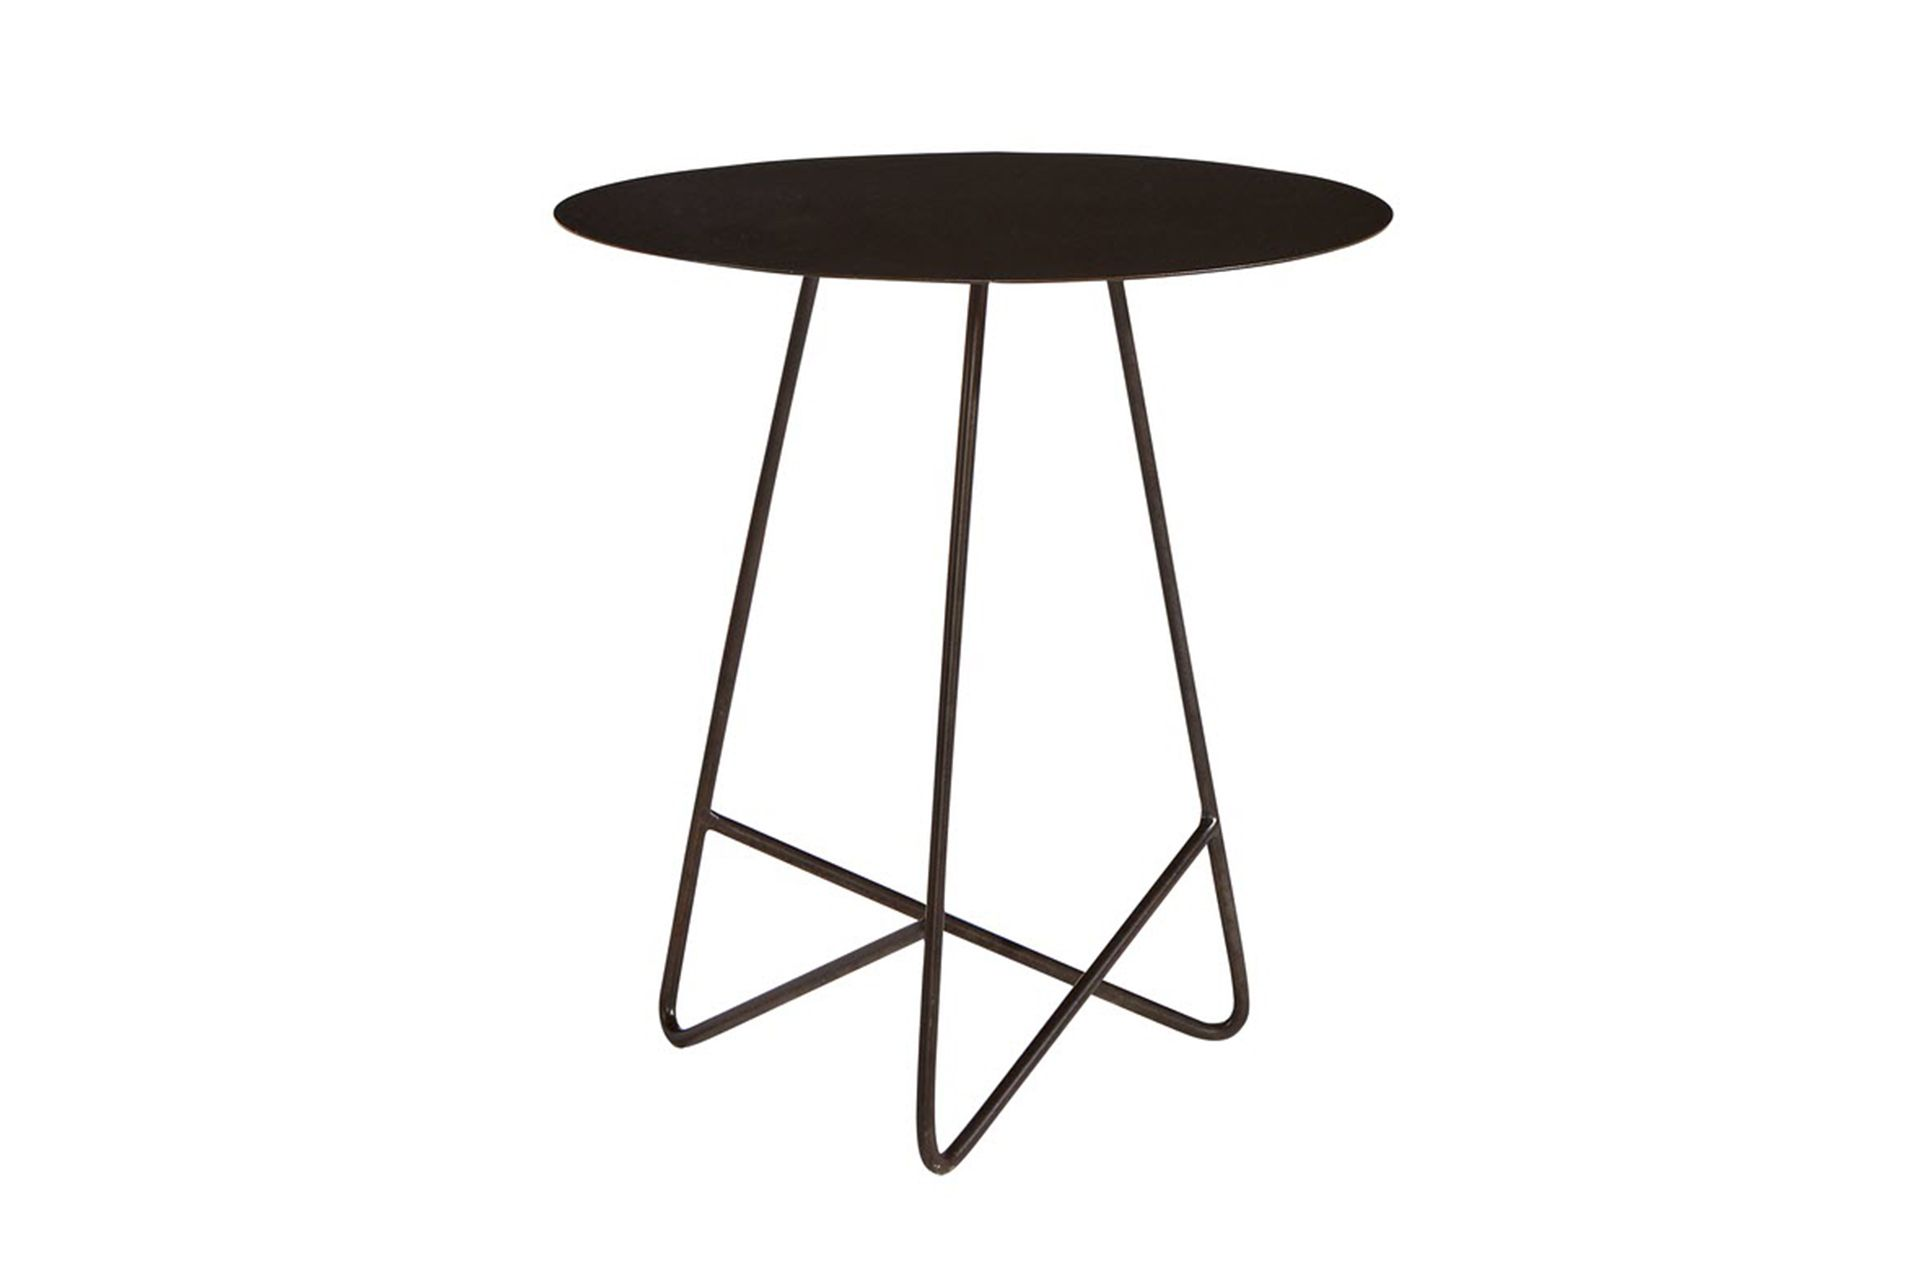 Magnolia Home Traverse Carbon Metal Round End Table By Joanna Gaines In 2021 Magnolia Homes End Tables Magnolia Homes Living Room [ 1288 x 1911 Pixel ]